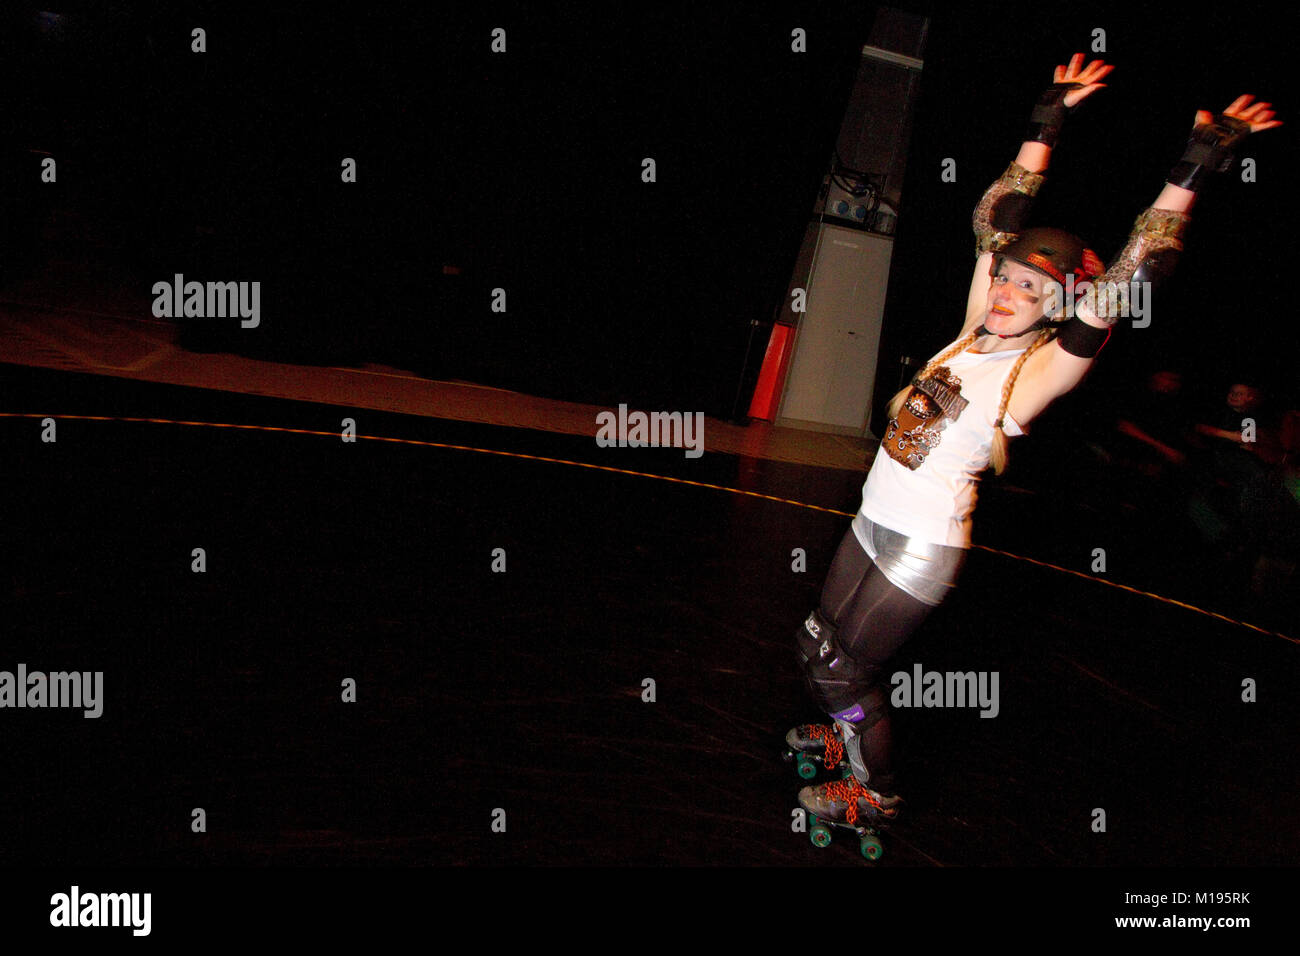 Roller derby skater warming up looks at the camera - Stock Image